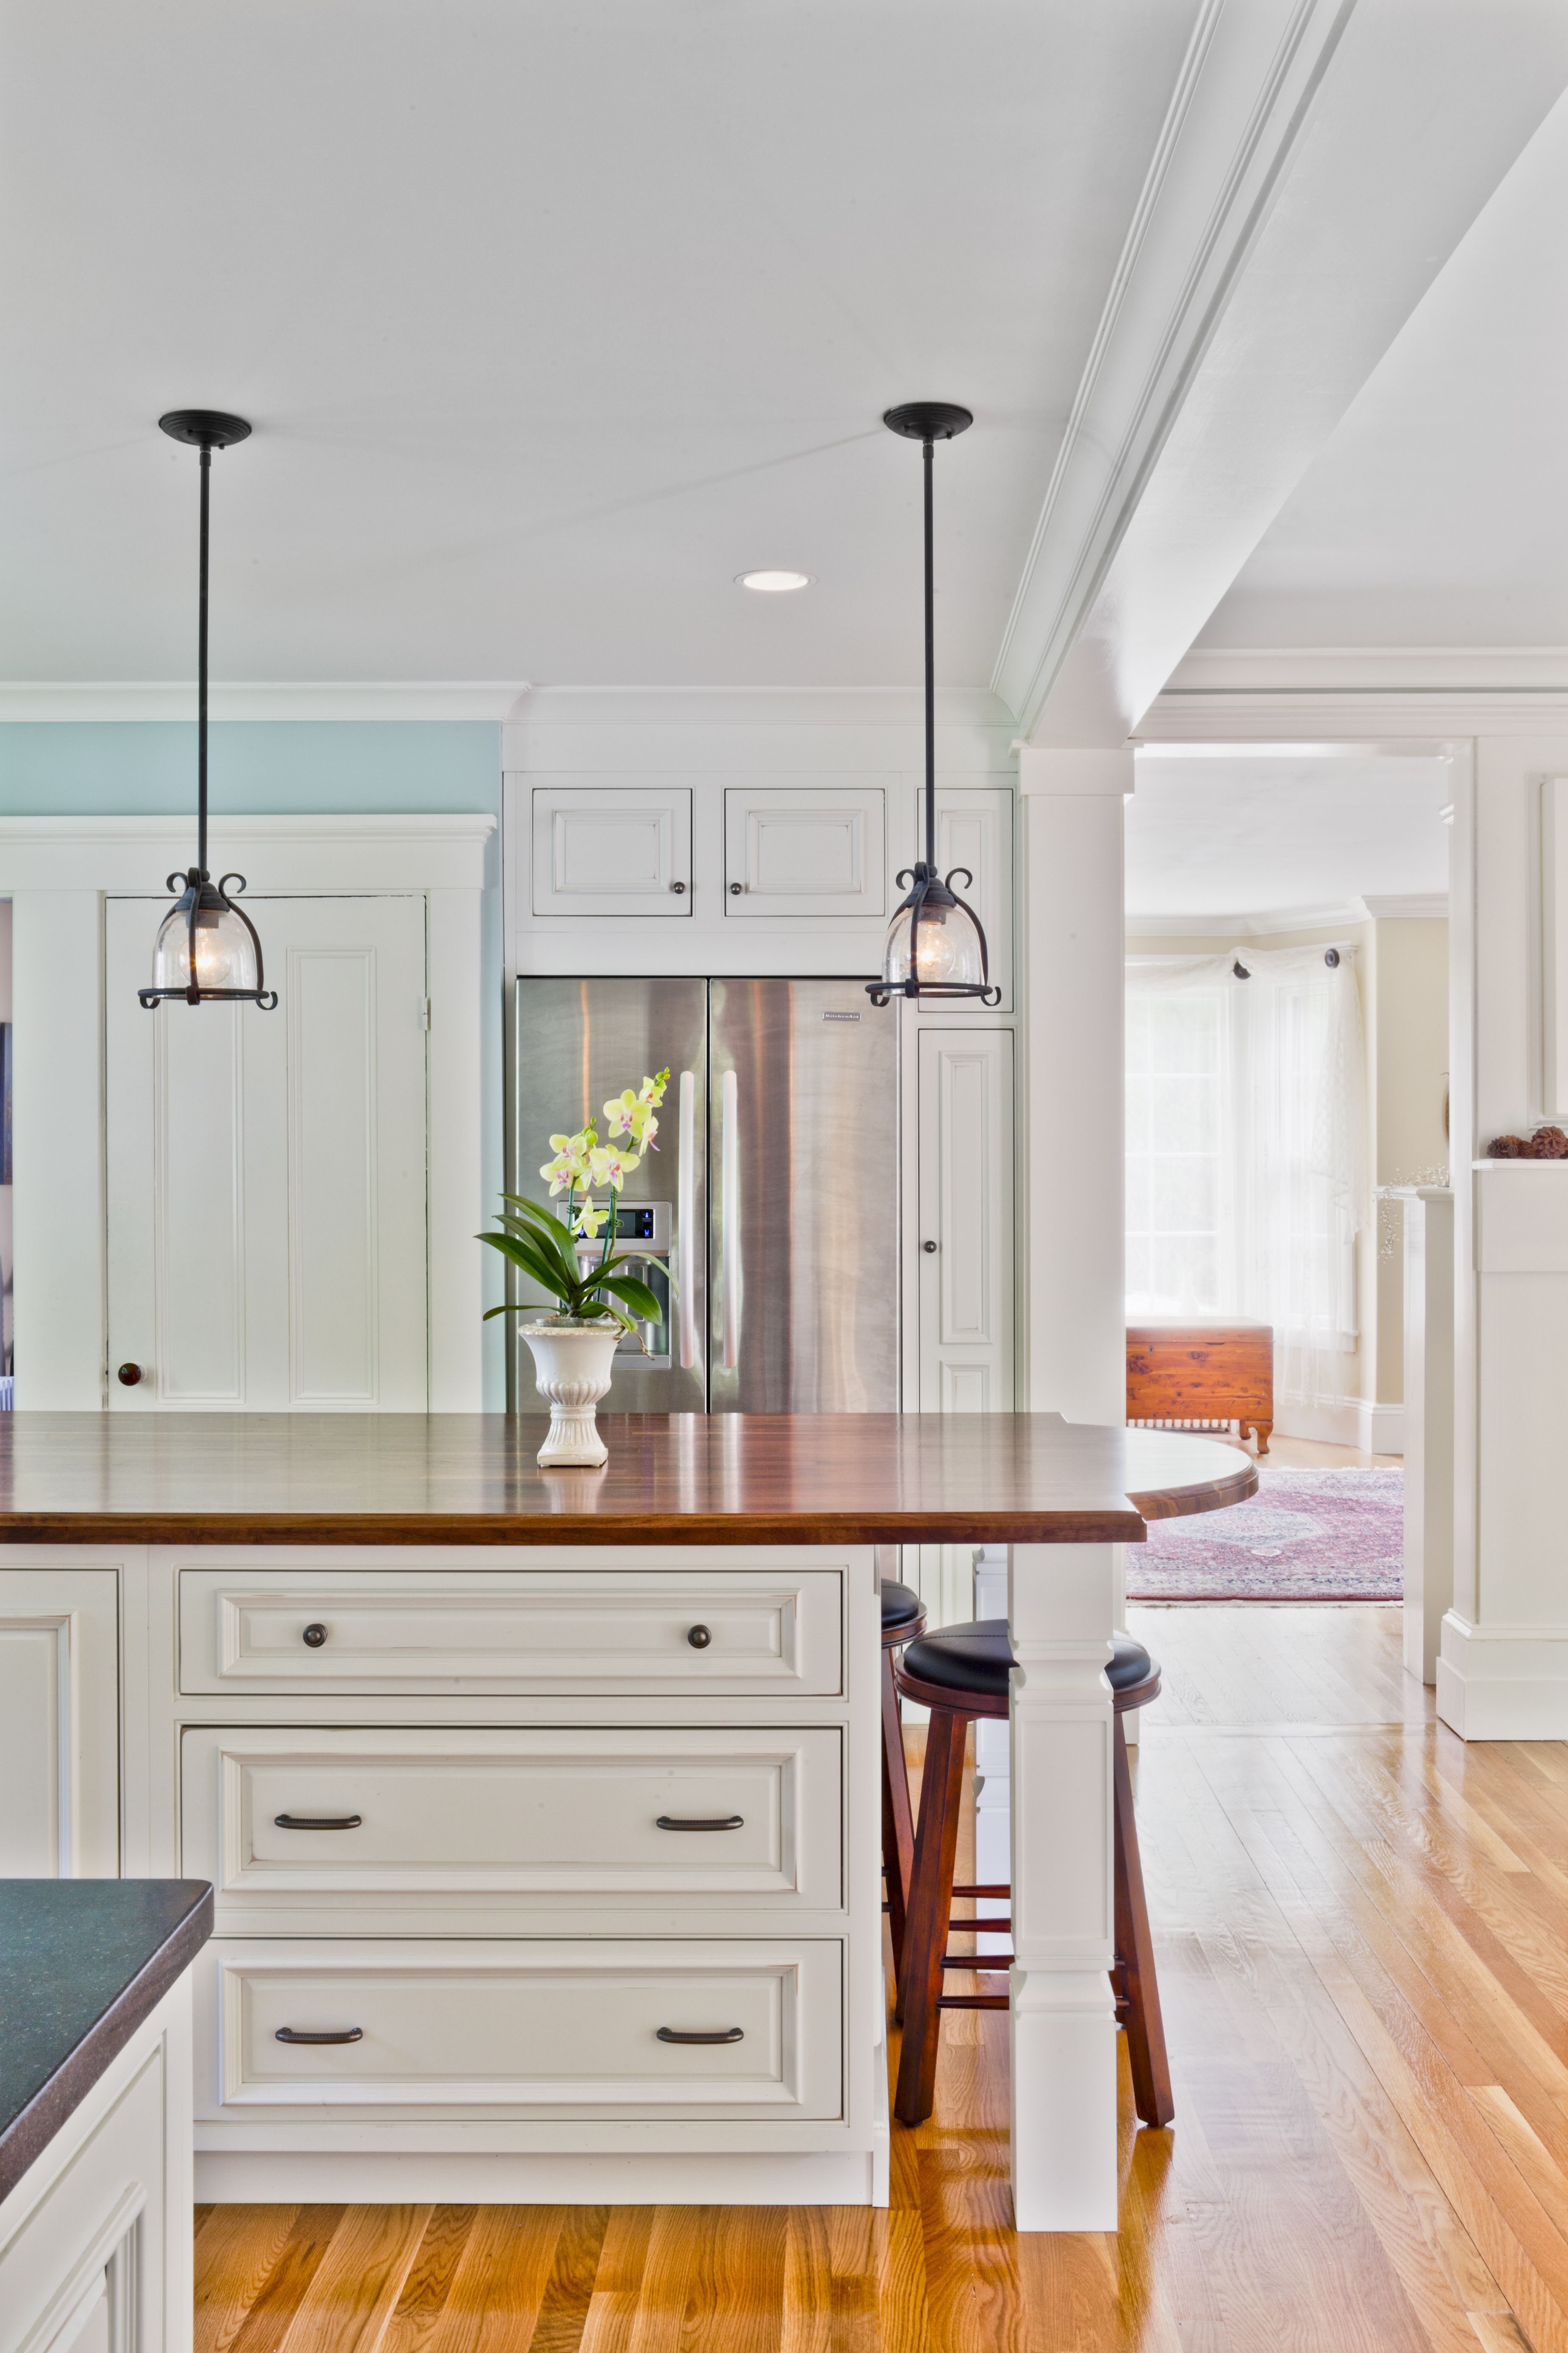 Shiloh Cabinets Oxford Door Polar White Beaded Inset Project